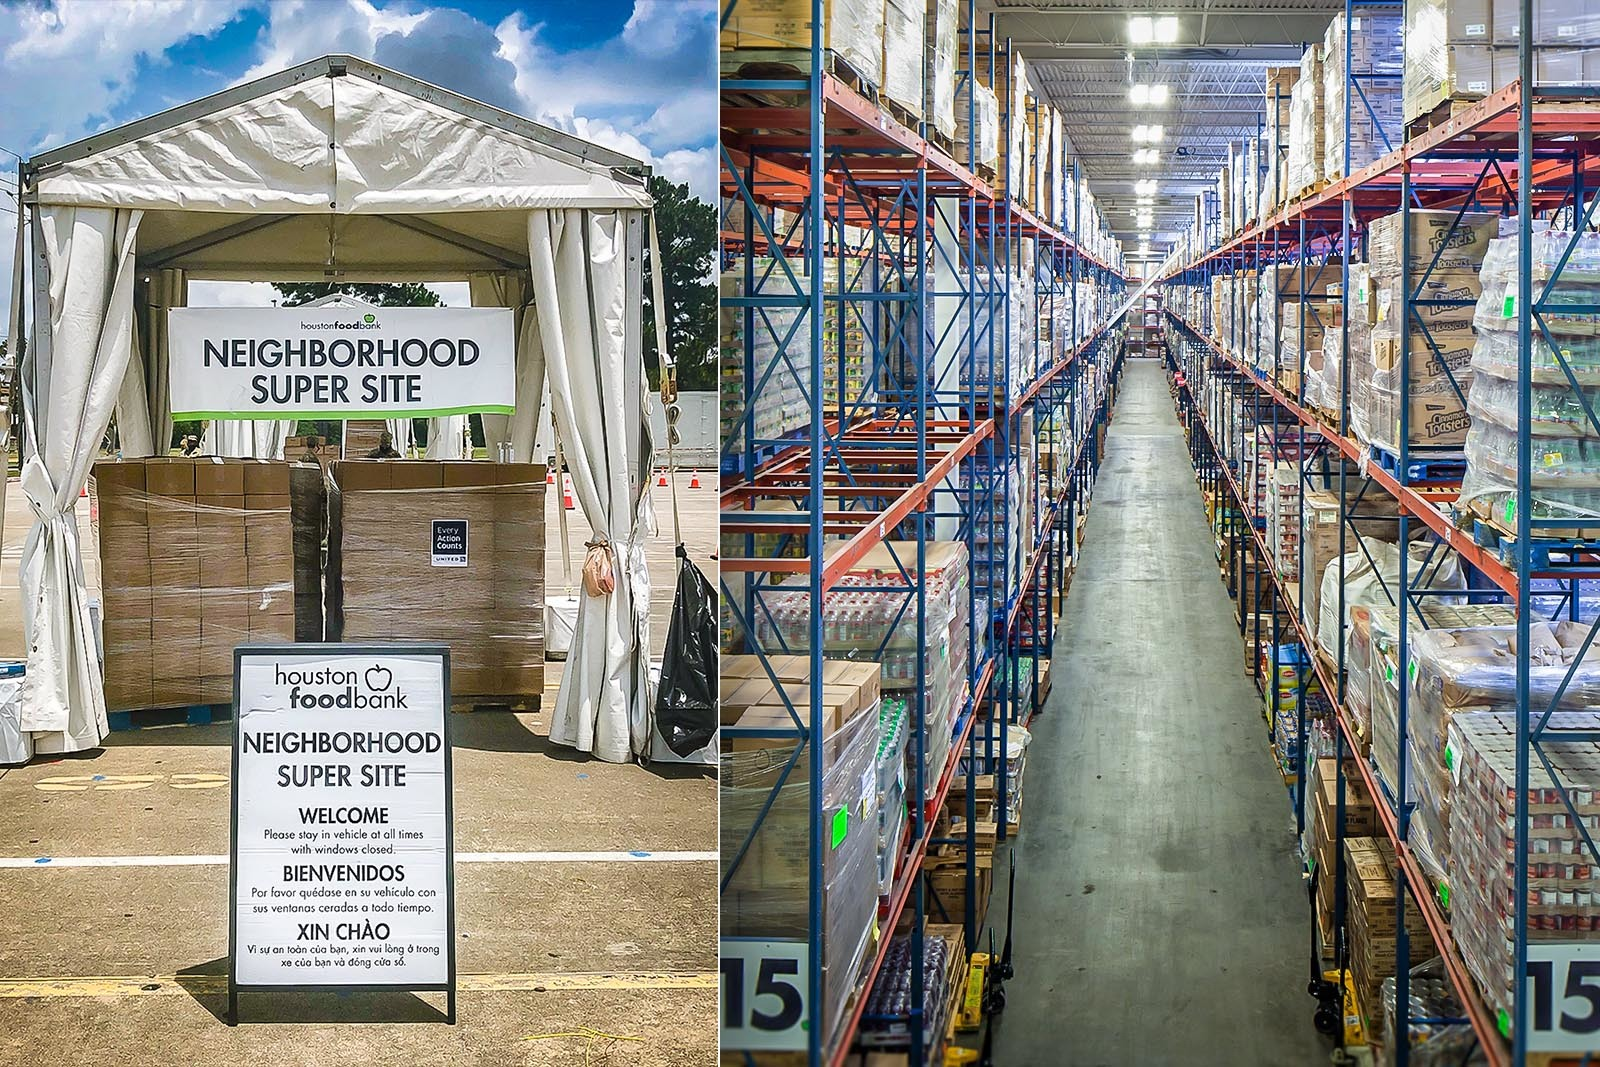 The Houston Food Bank works with pantry partners to host super site events around the city. With many supermarkets cleared out by consumer buying during COVID-19, food banks have been purchasing items to keep shelves stocked.